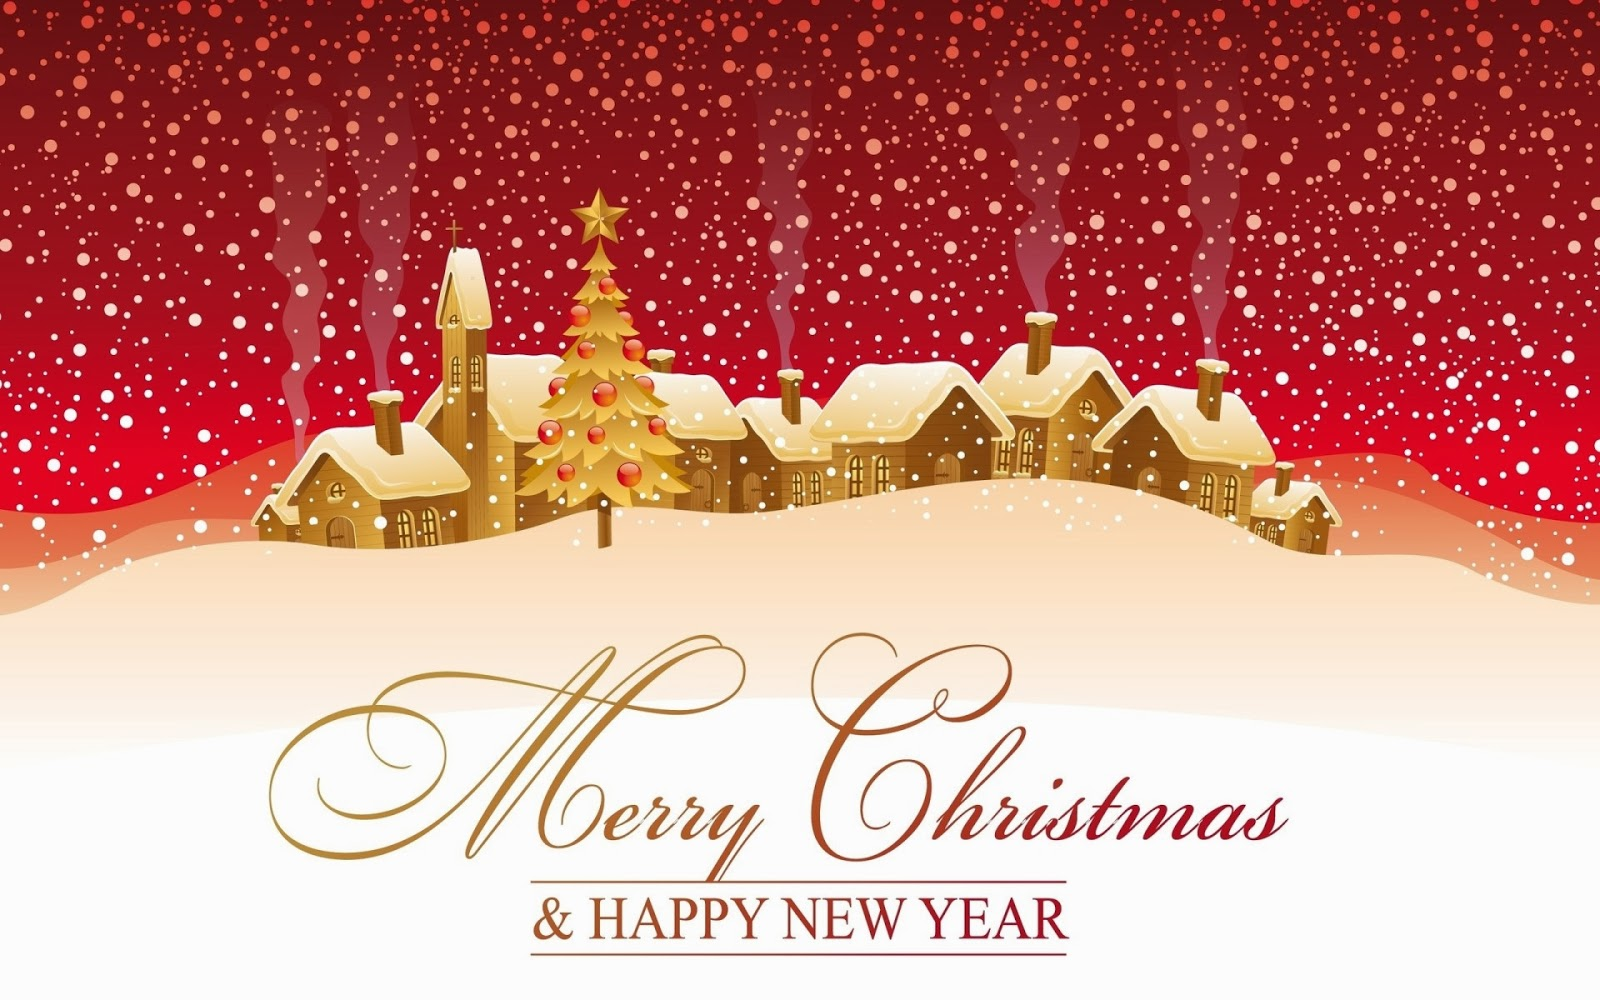 Wishing You A Very Merry Christmas And Happy New Year